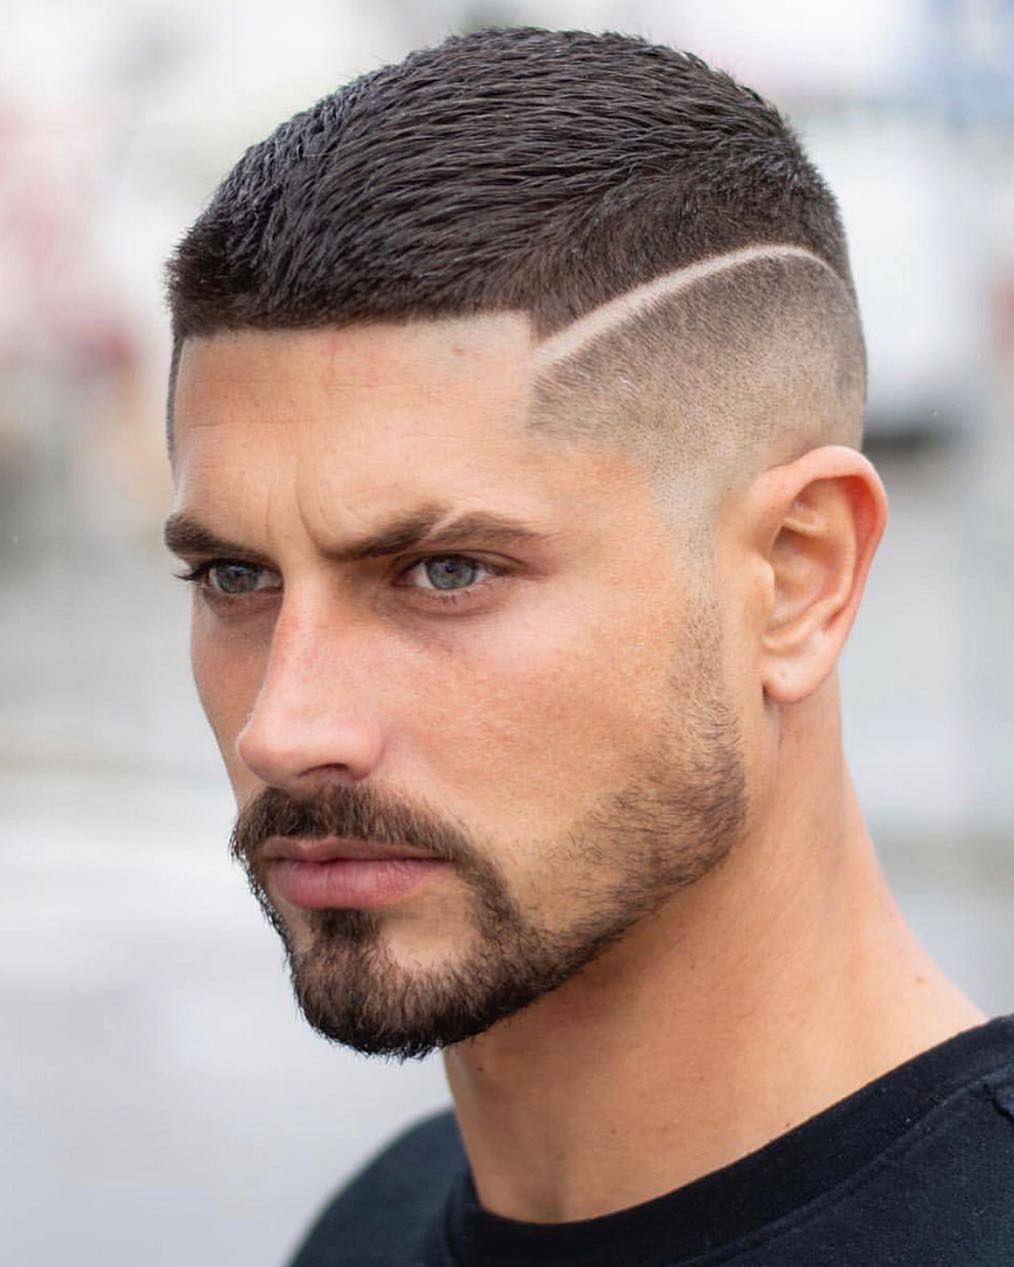 Get that tough look with your new barber today! EEVOY